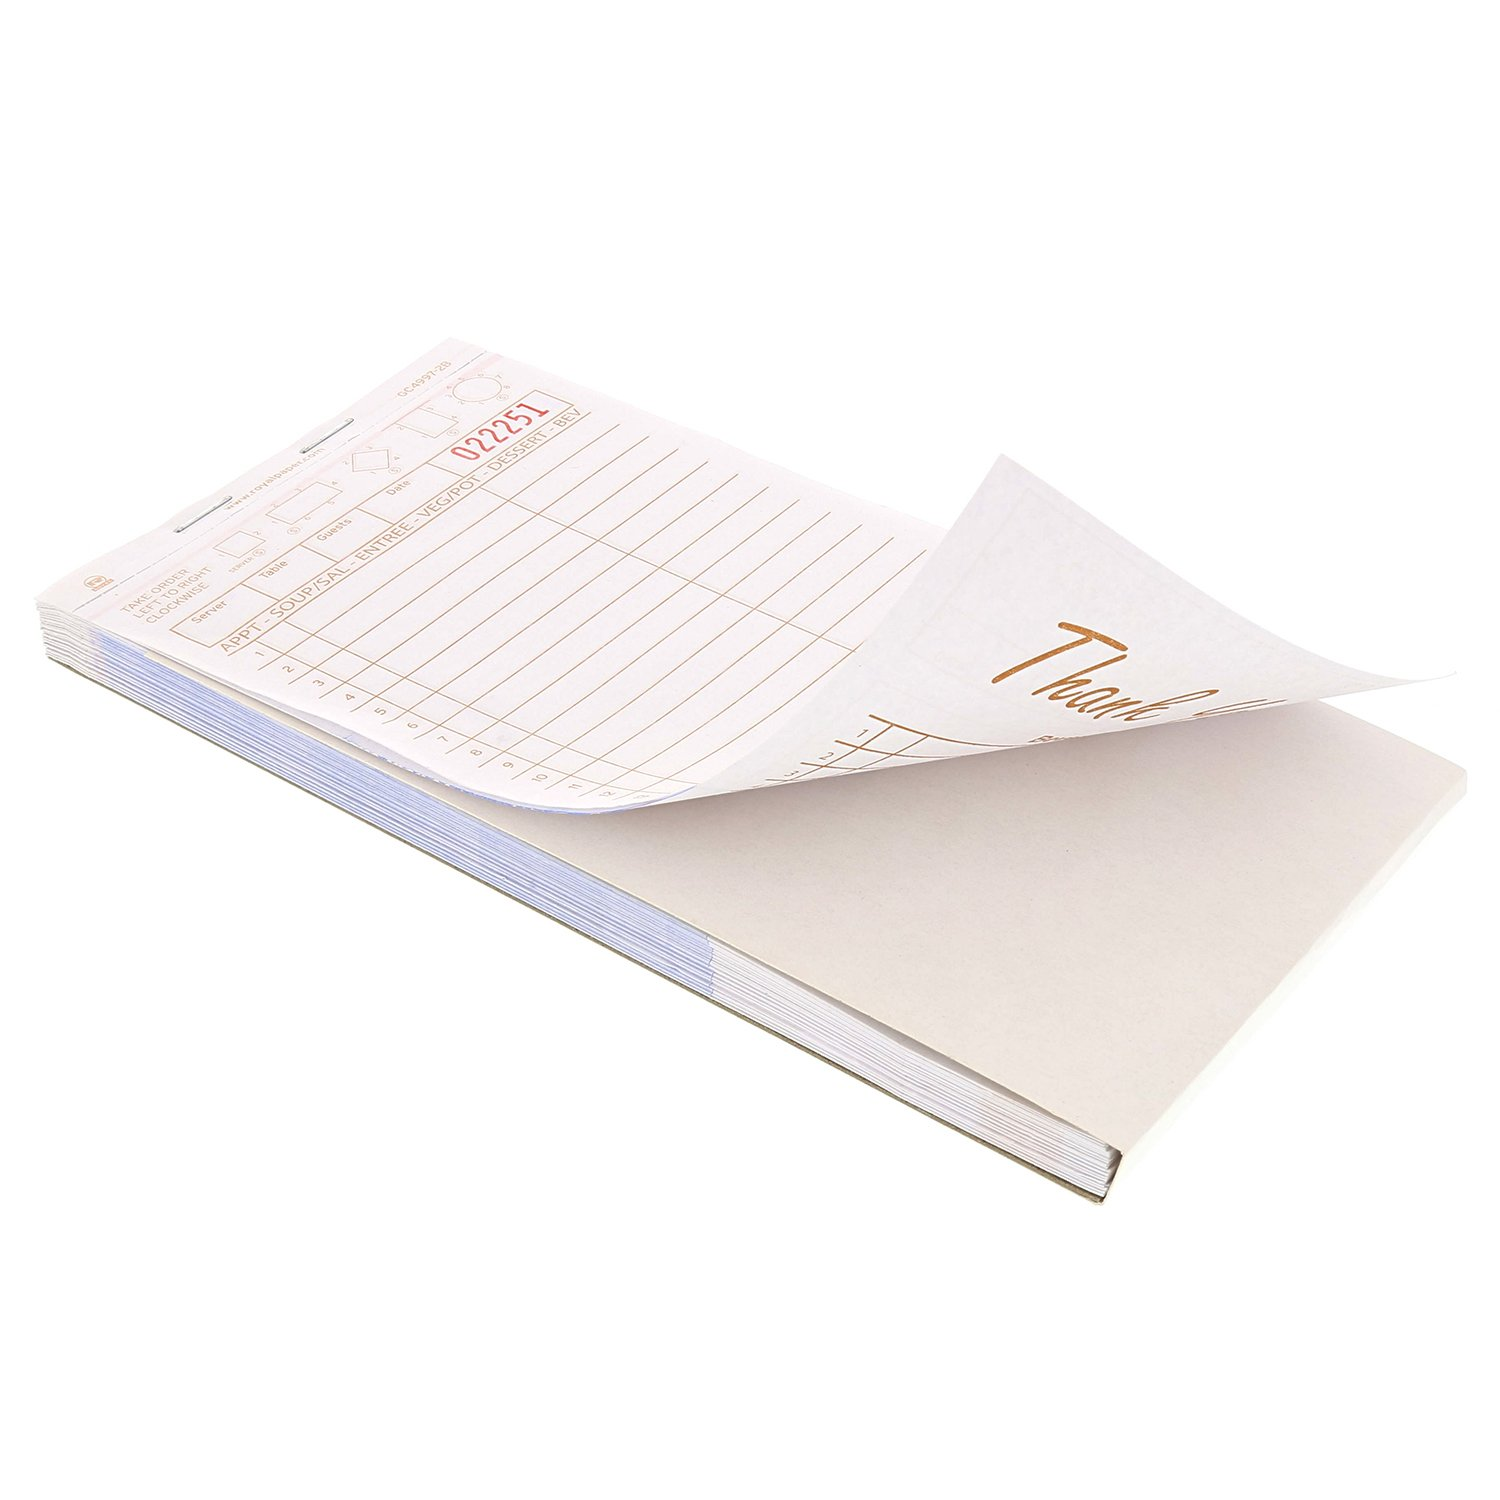 Royal Tan Guest Check Board, Carbonless, 2 Part Booked, Package of 10 Books